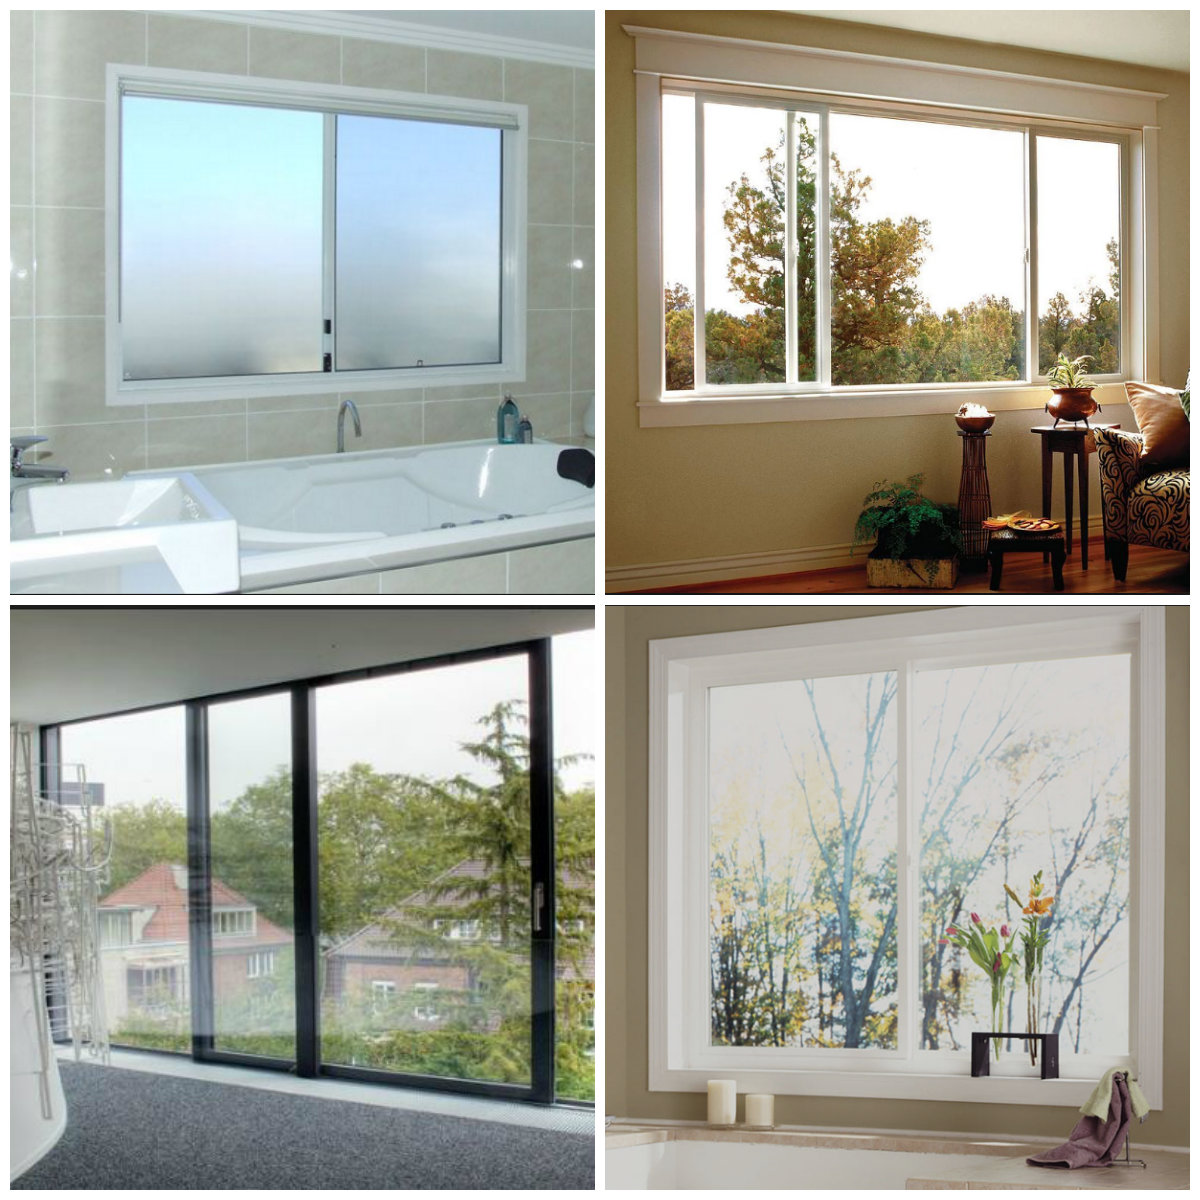 Automatic Opener For Window  Aluminium Alloy Frame Bar Sliding  Tempered Glass Window System  New Design